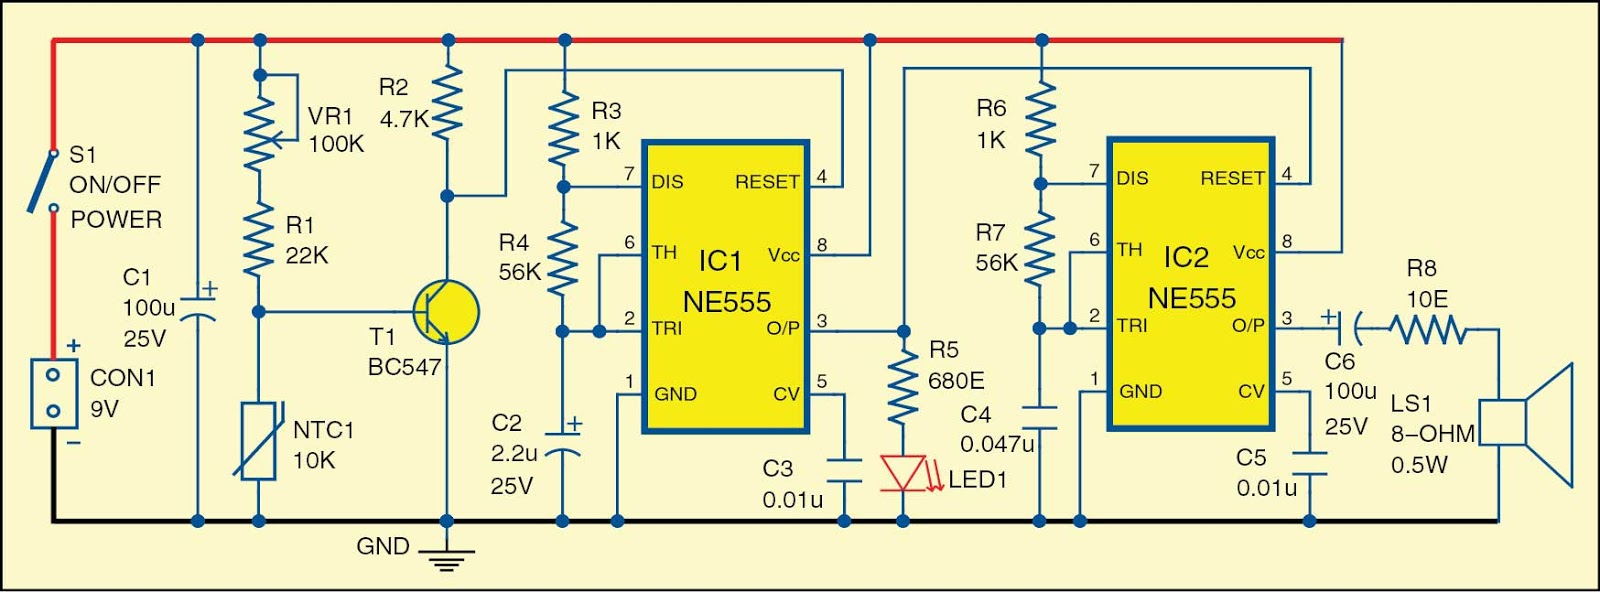 fire alarm panel circuit diagram images simple fire alarm thermistor circuit diagram fire alarm using